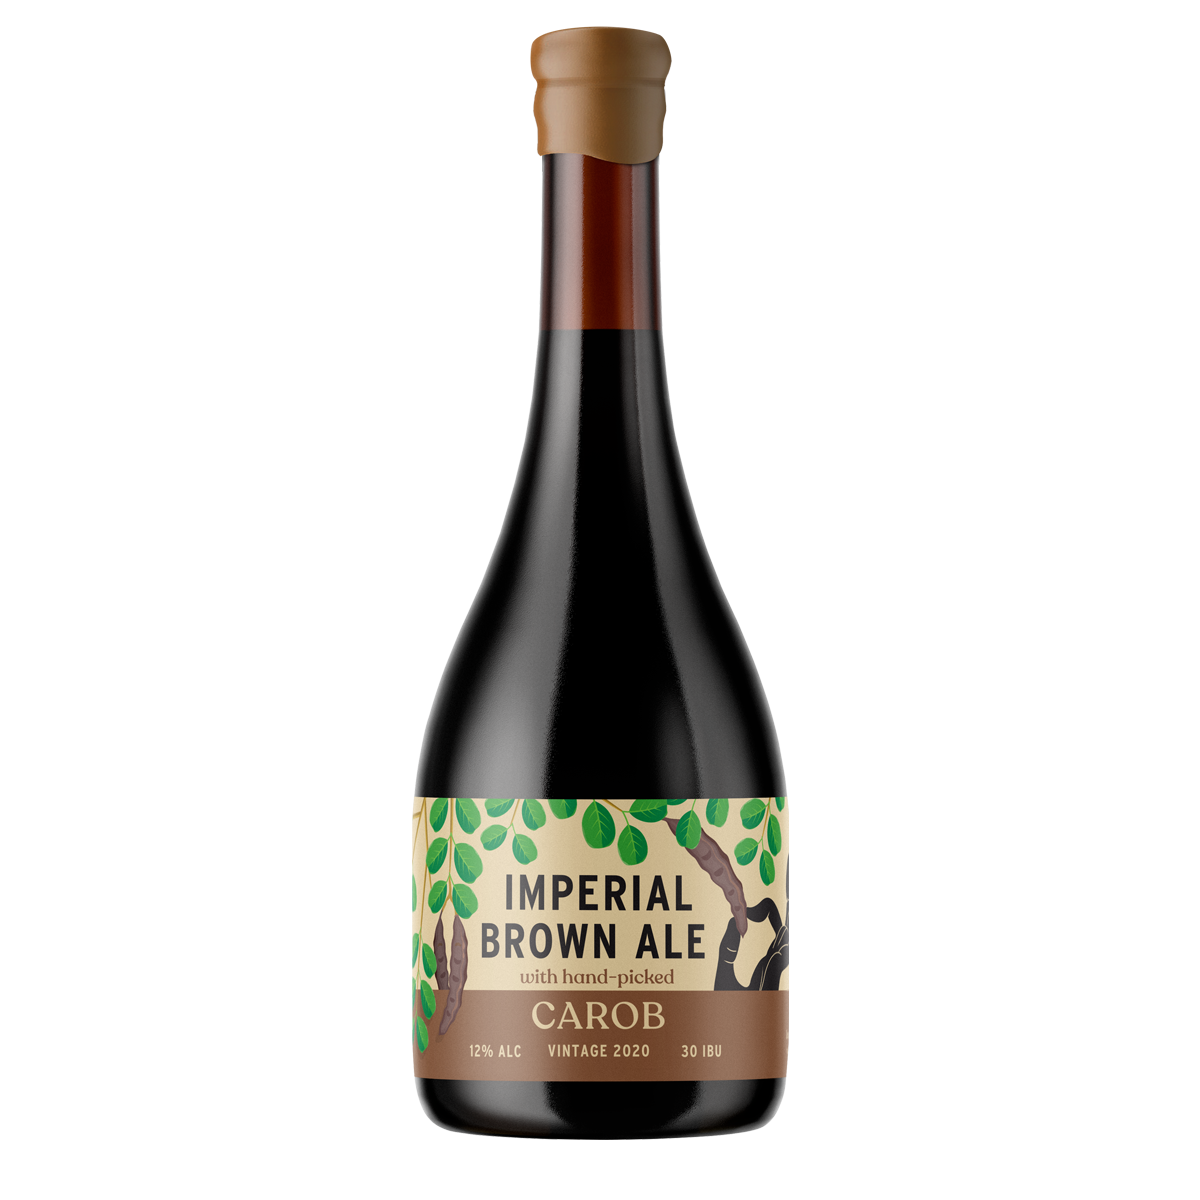 Carob Imperial Brown Ale